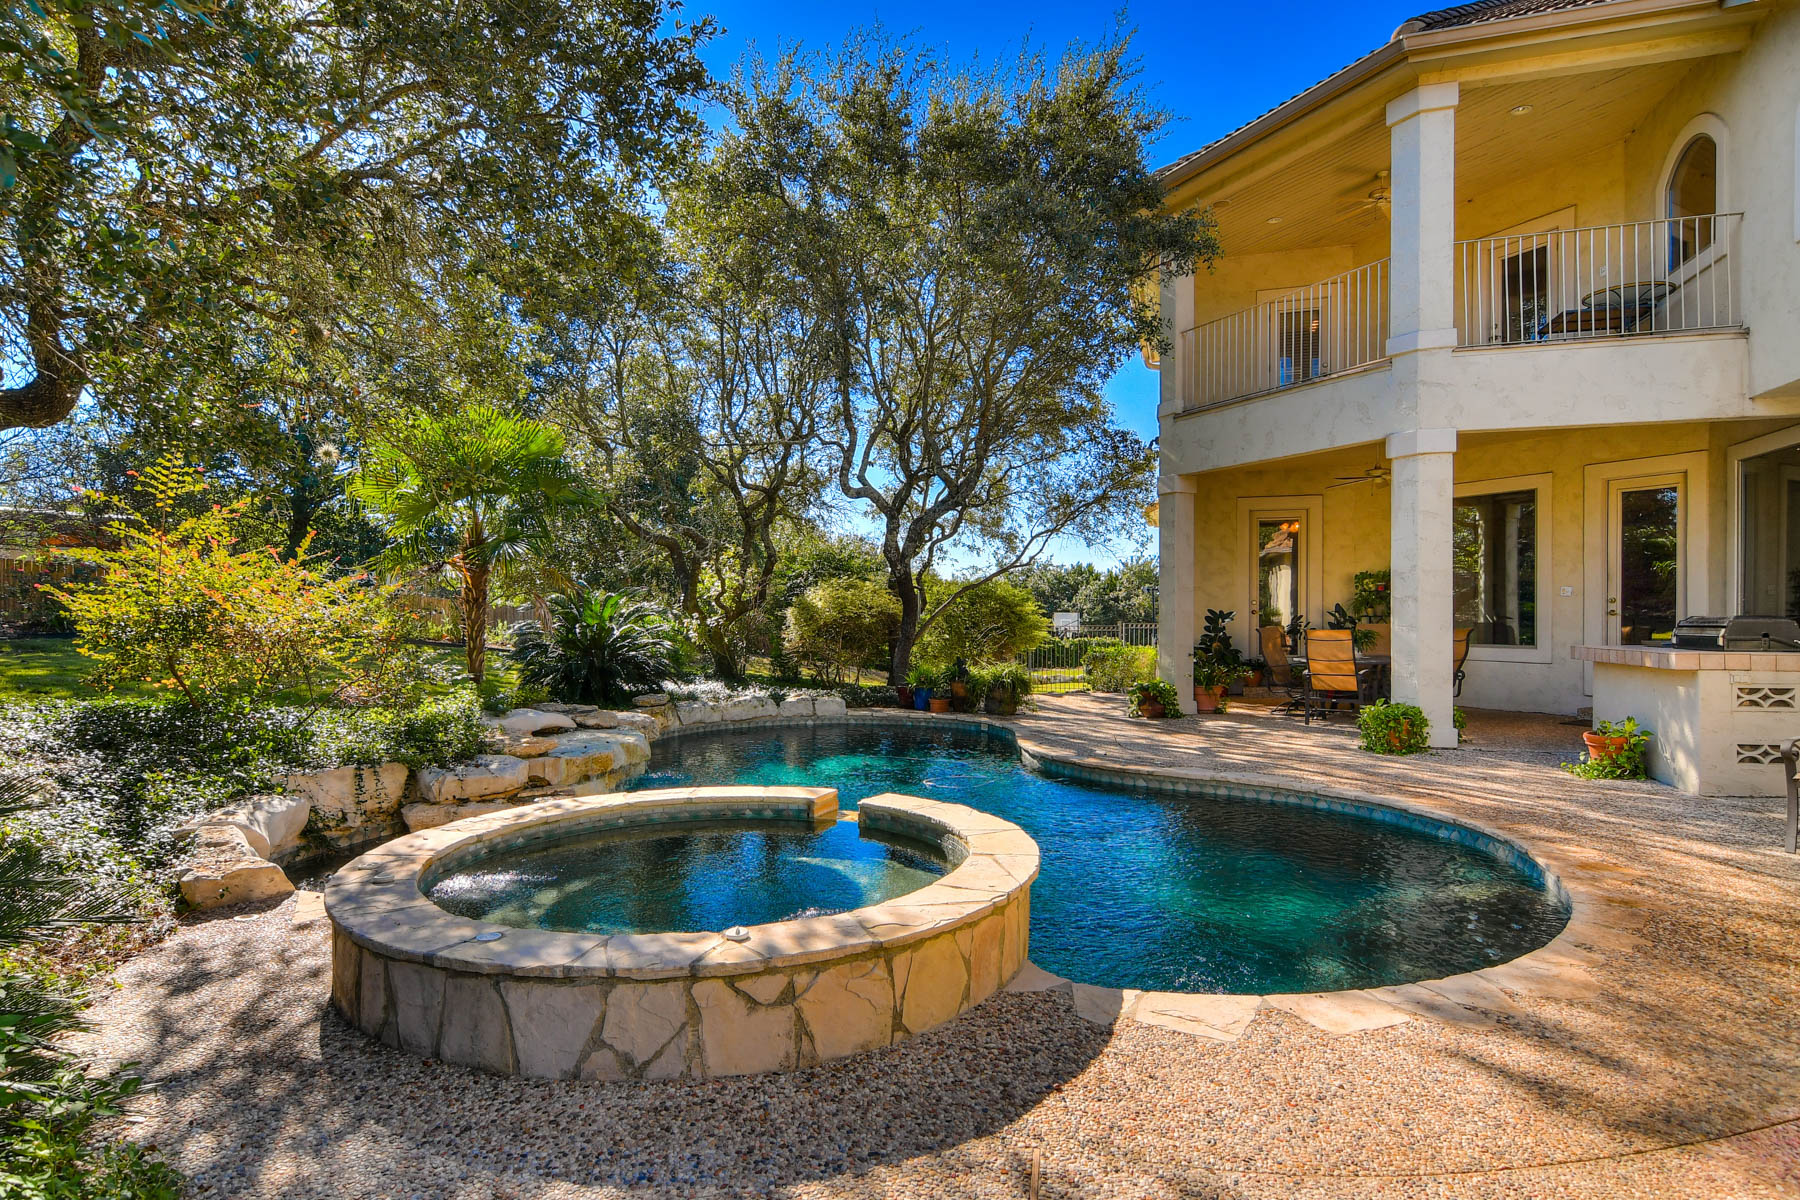 Single Family Home for Sale at Meticulously Crafted Home in Champions Ridge 9 Caleb Cir San Antonio, Texas, 78258 United States